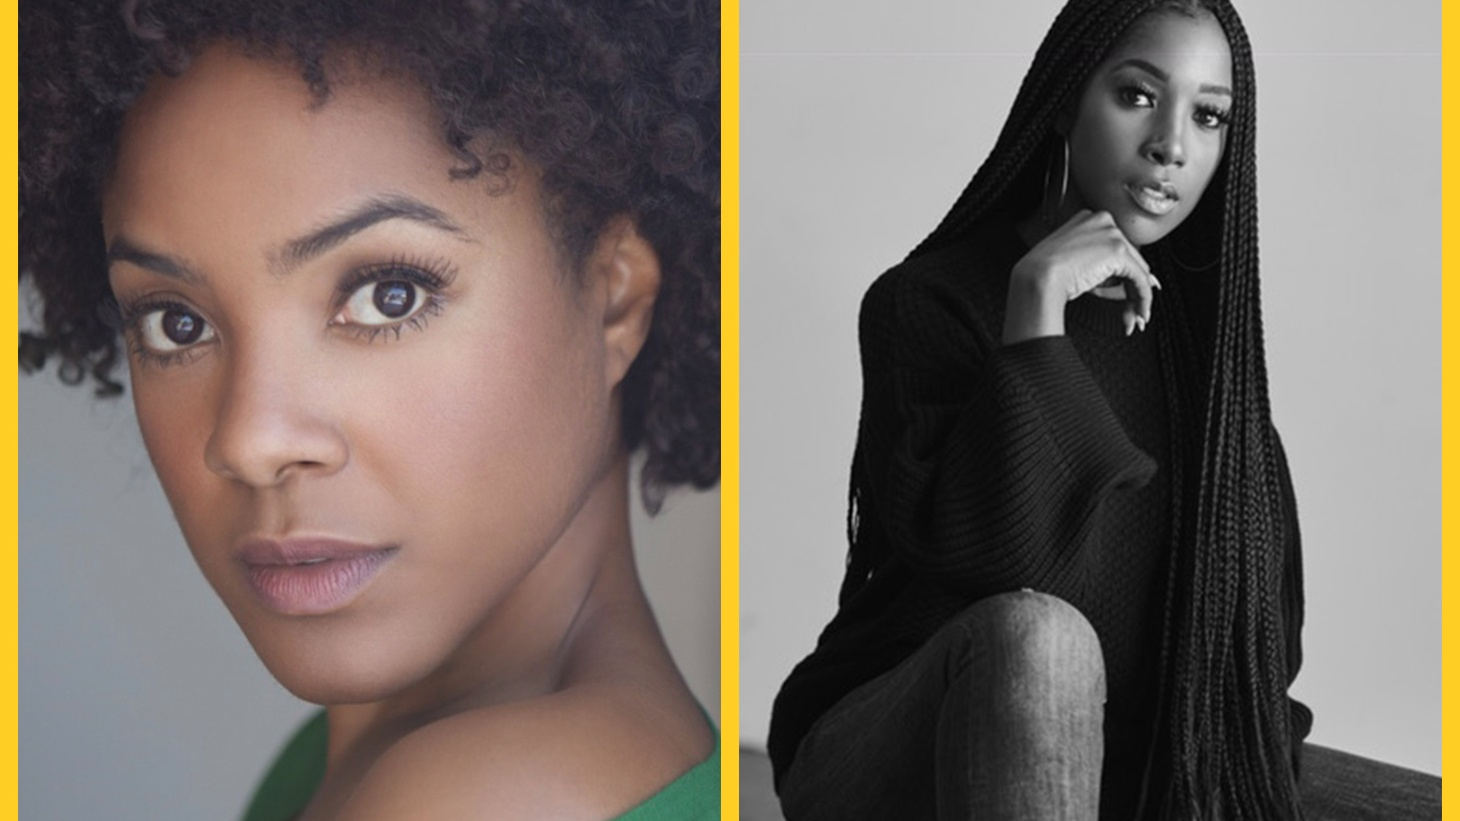 You might recognize Dear White People's Ashley Blaine Featherson (Joelle) and Courtney Sauls (Brooke). There is so much more to an actor's life than getting a good part (think: never-ending auditions and scant parts for black women).